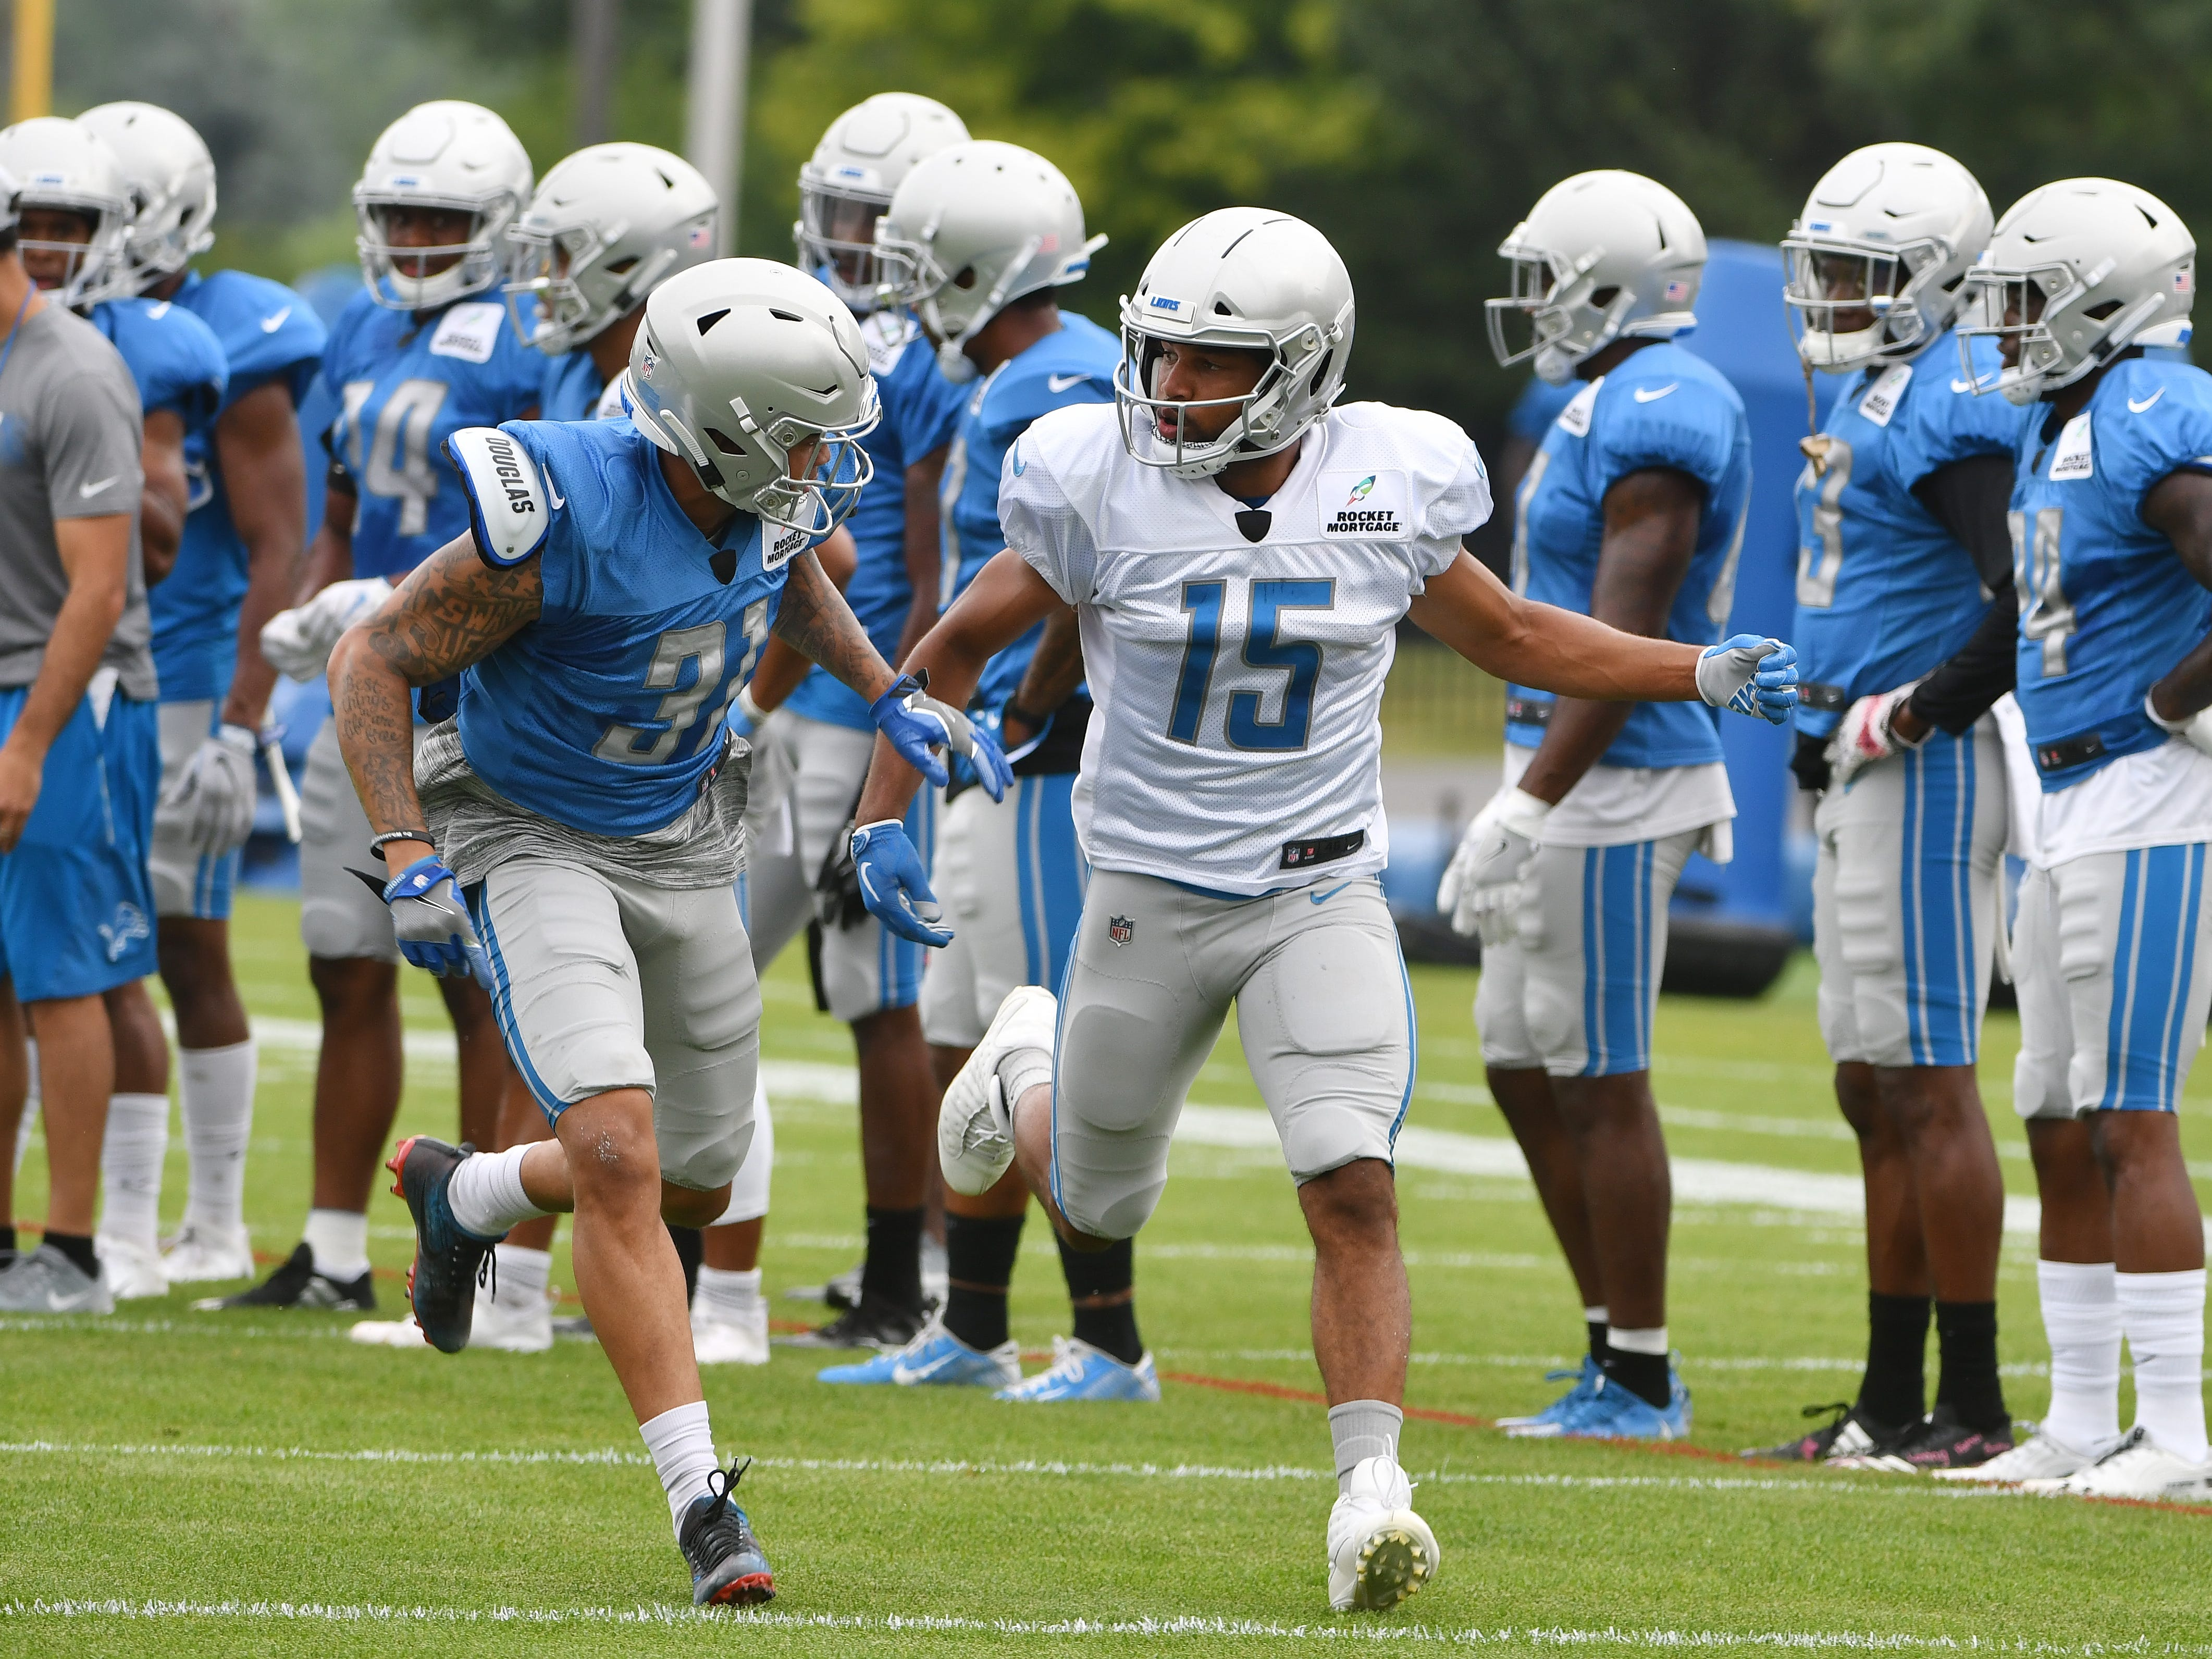 Lions cornerback Teez Tabor and wide receiver Golden Tate work during a drill involving bursting off the line of scrimmage against a defender.